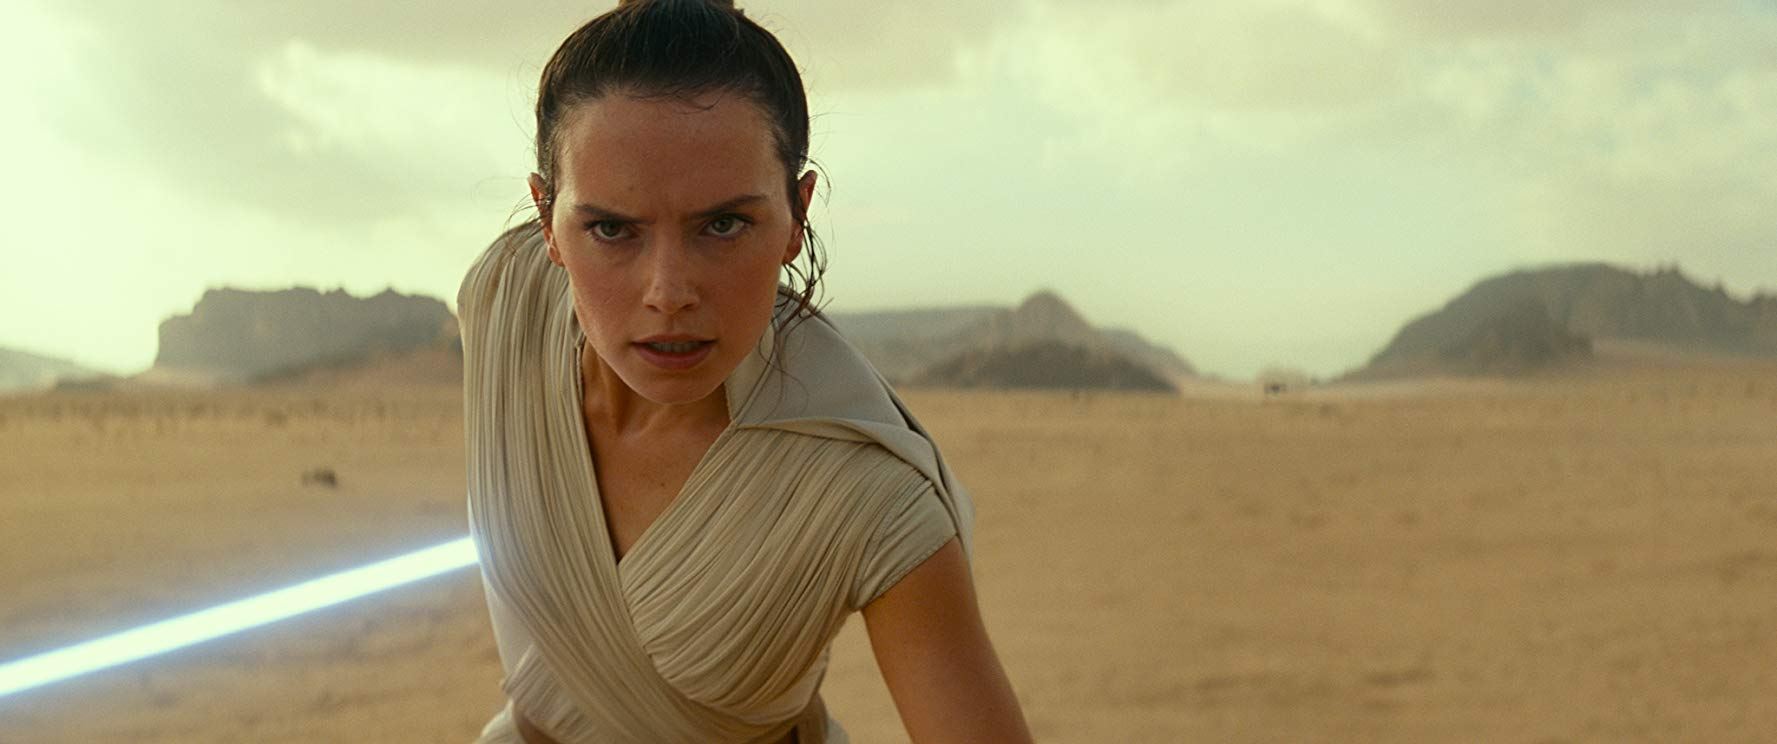 'Star Wars: The Rise of Skywalker' Novelization Reveals Rey's Father is a Failed Palpatine Clone